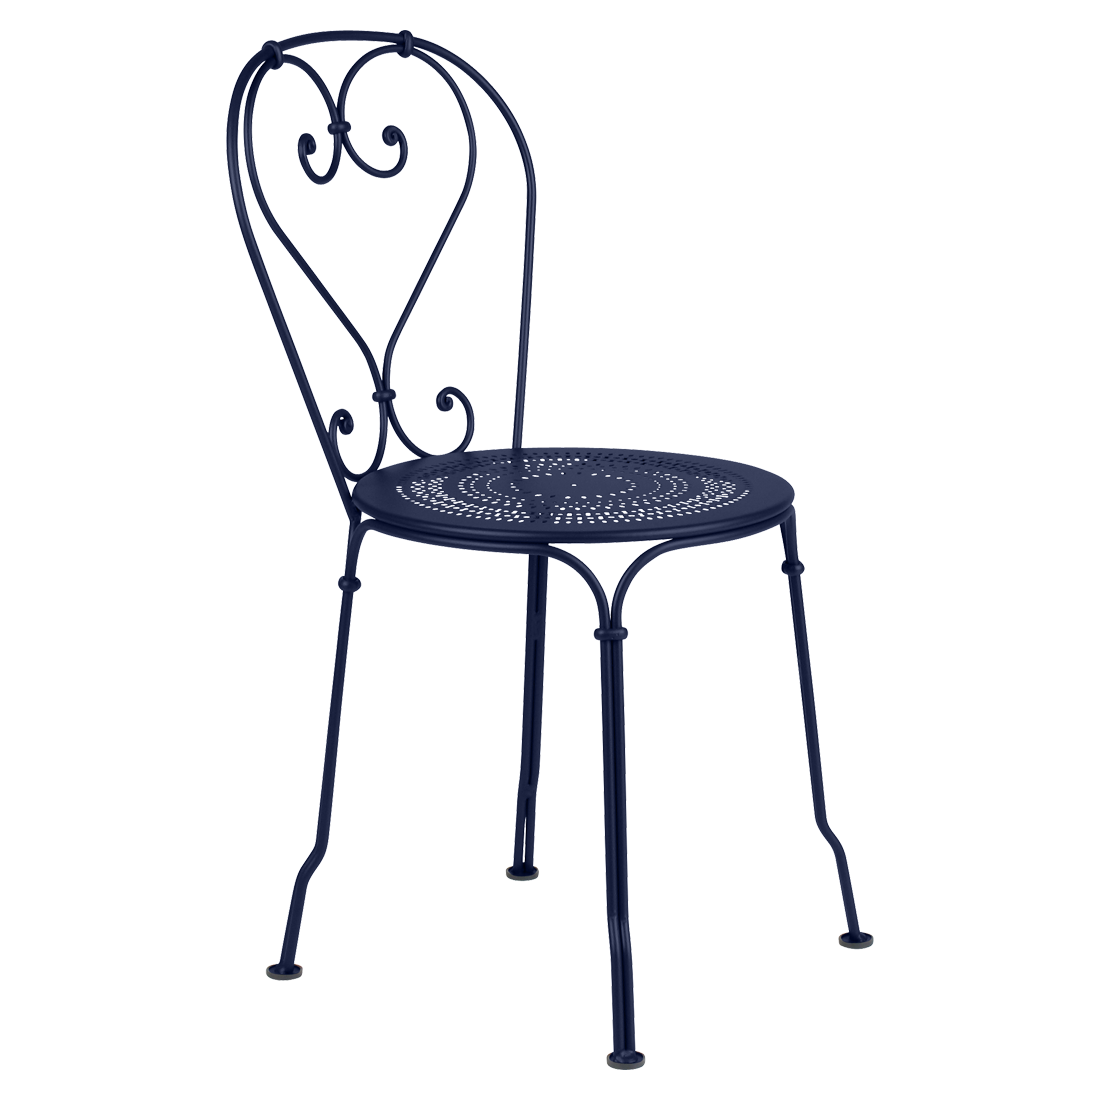 chaise metal, chaise a volute, chaise bleu